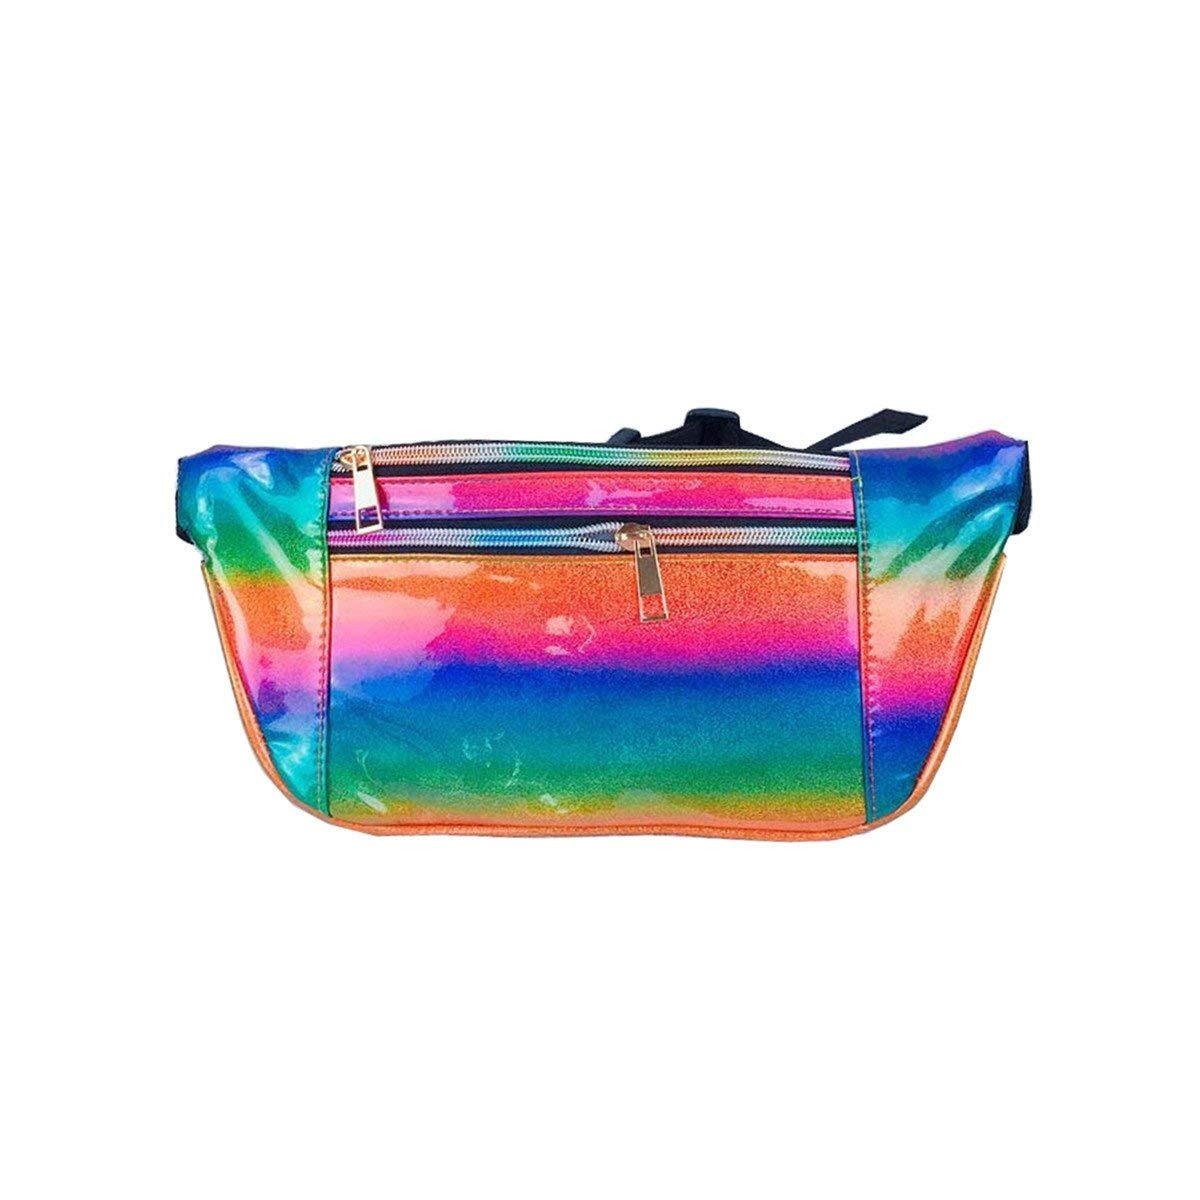 Andear Shiny Holographic Laser Bumbag Waterproof Fanny Pack Sports Hiking Running Waist Bag Hip Pack